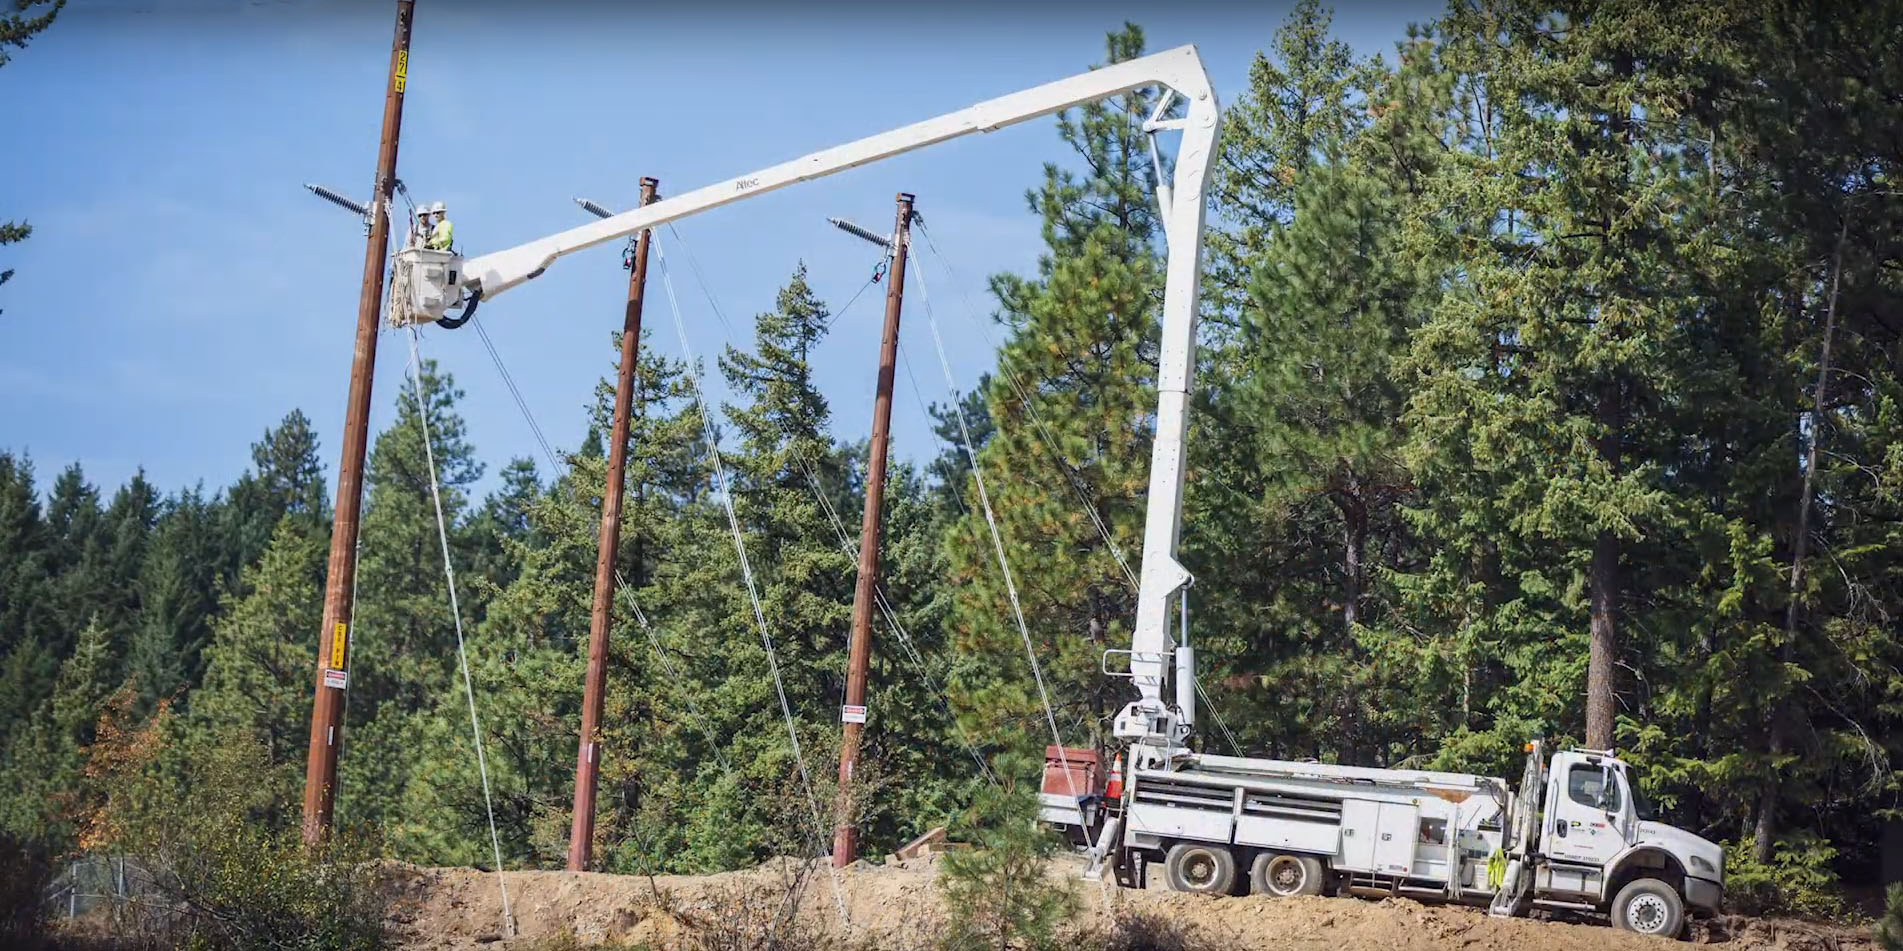 Bucket truck and employees working on electric power line